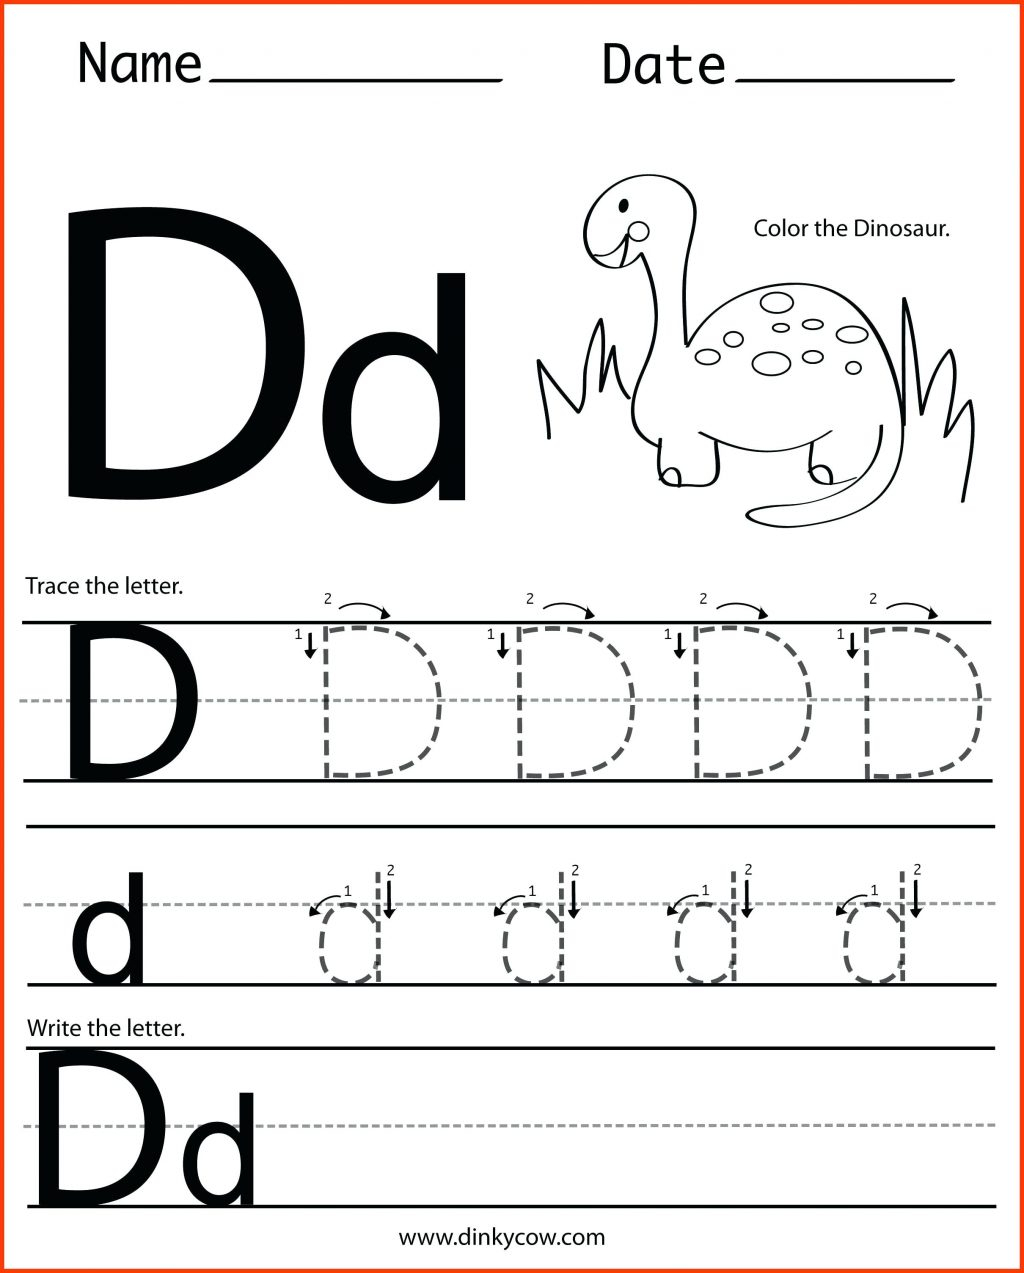 Printable Tracing Letters For 3 Year Olds